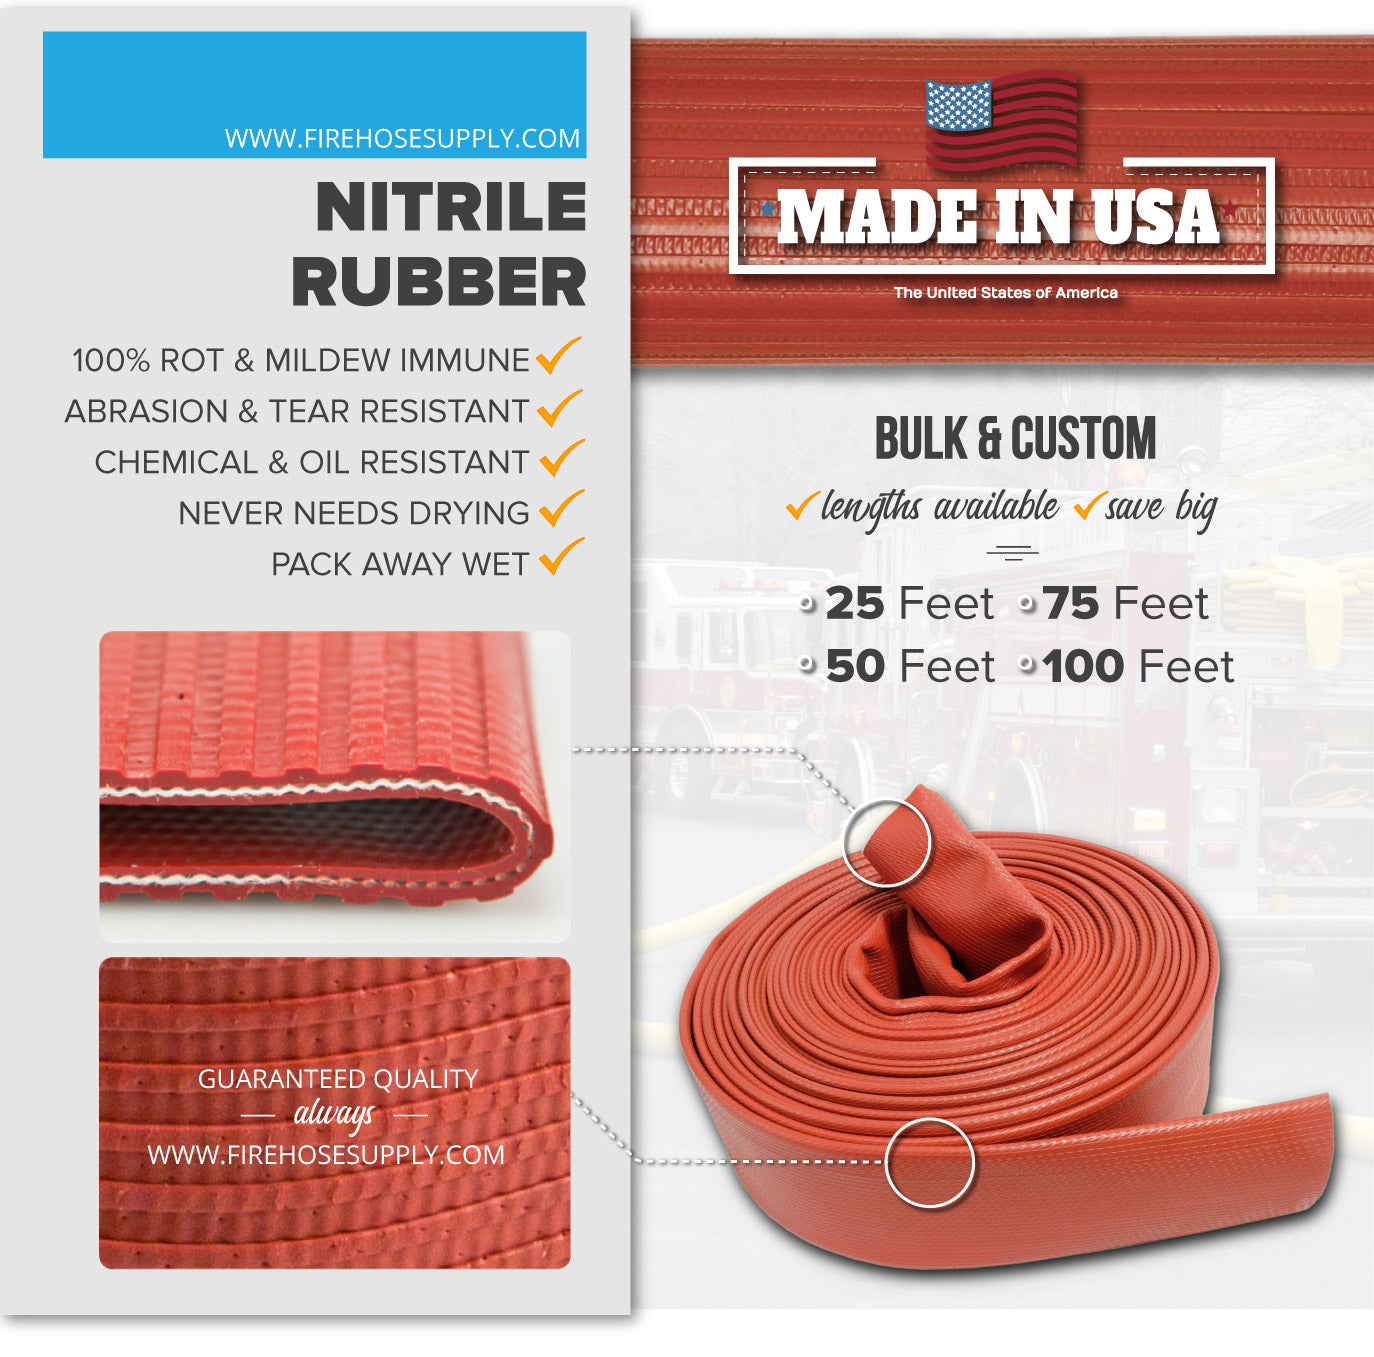 4 Inch Uncoupled Rubber Fire Hose Only No Connectors Red Nitrile 250 PSI